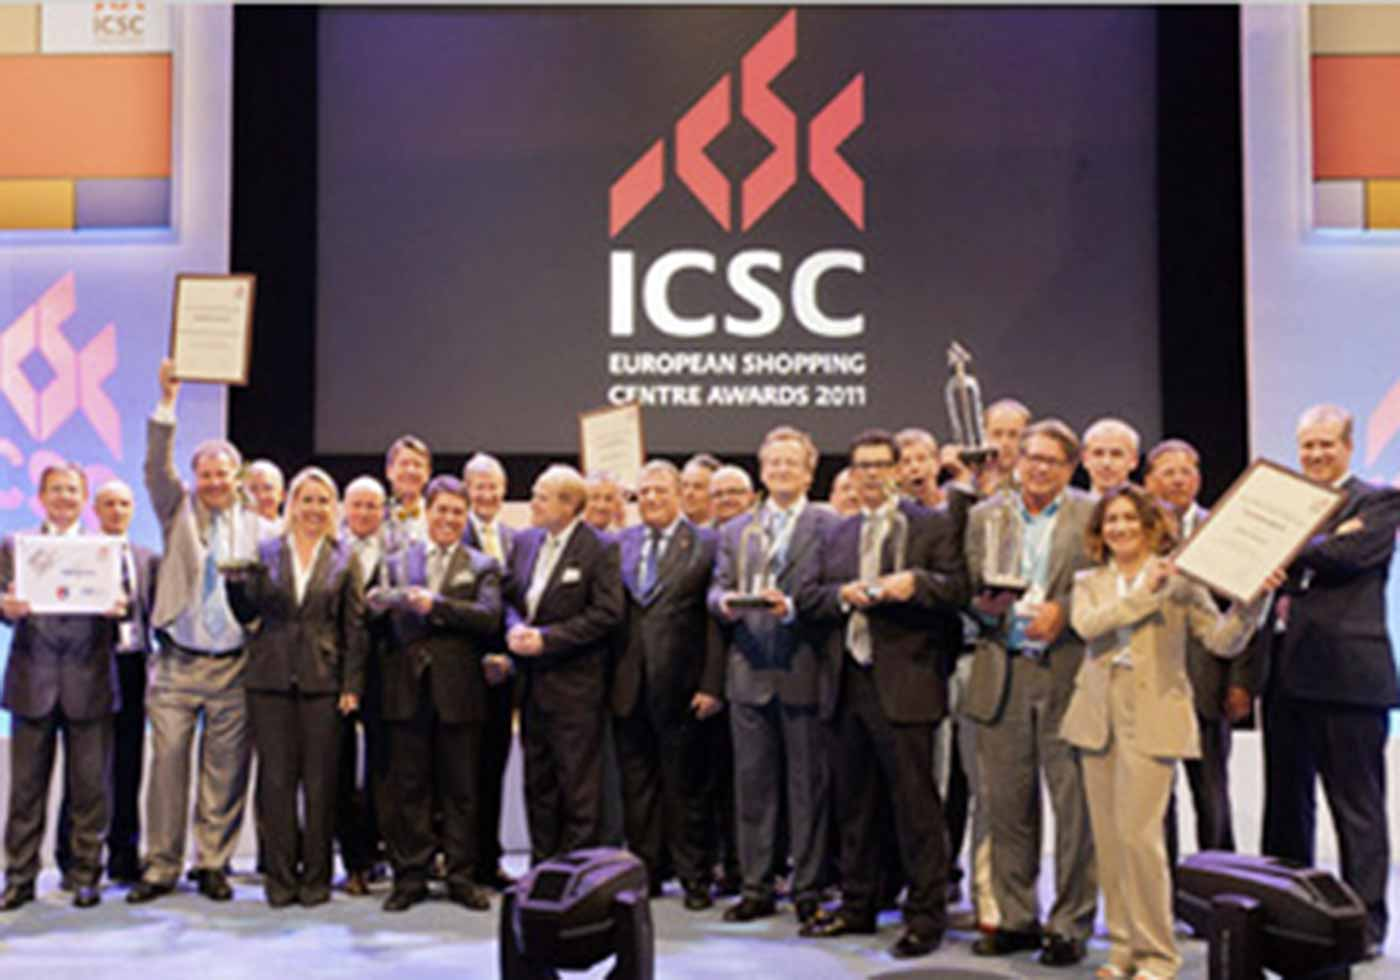 ICSC Jury with ATP CEO Christoph M. Achammer